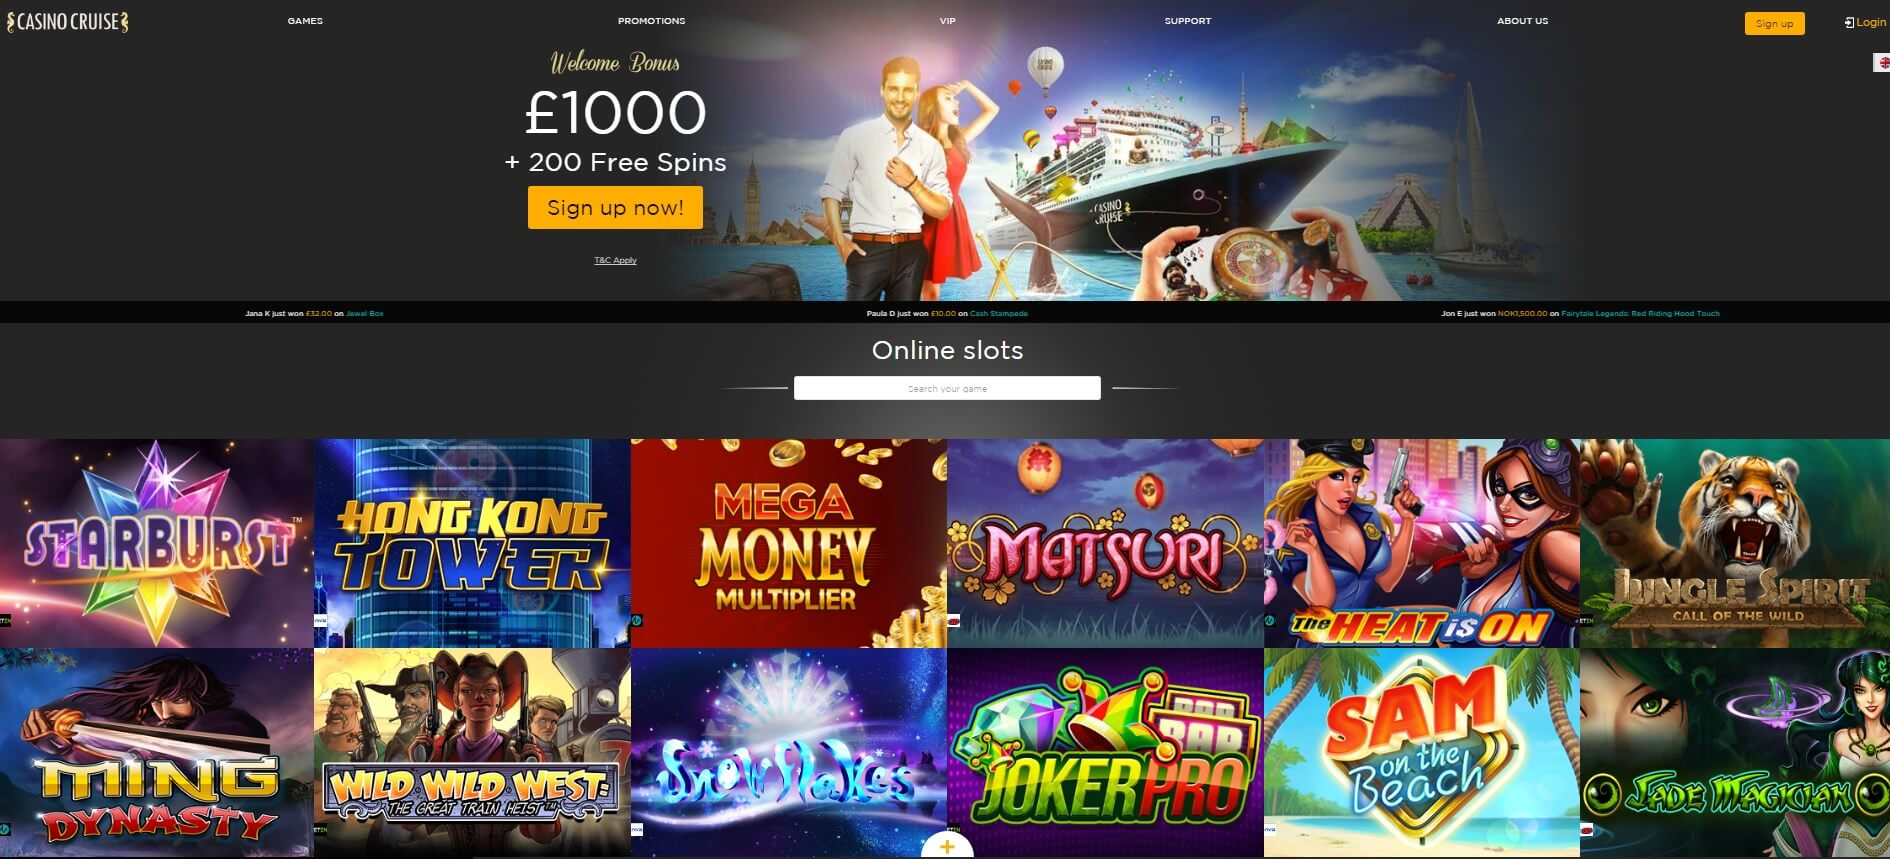 casino cruise online slots and casino games